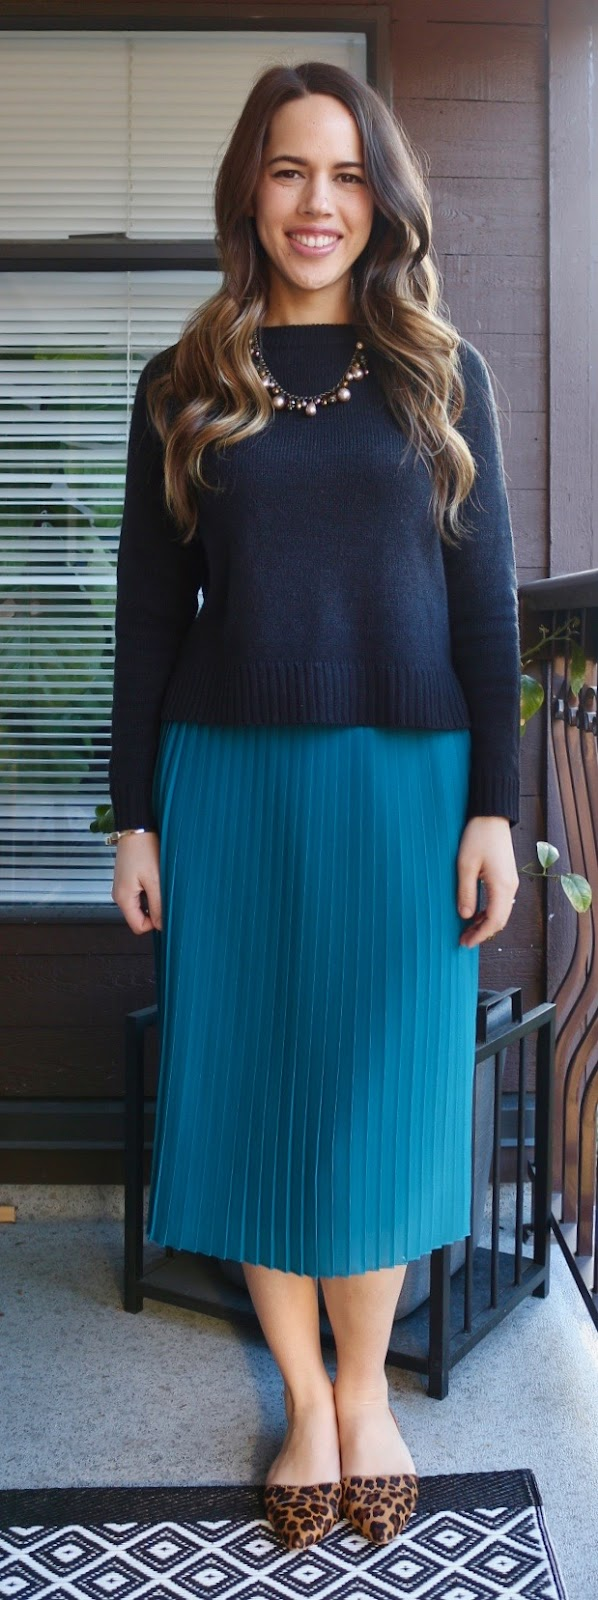 Jules in Flats - Teal Pleated Midi Skirt and Cropped Sweater